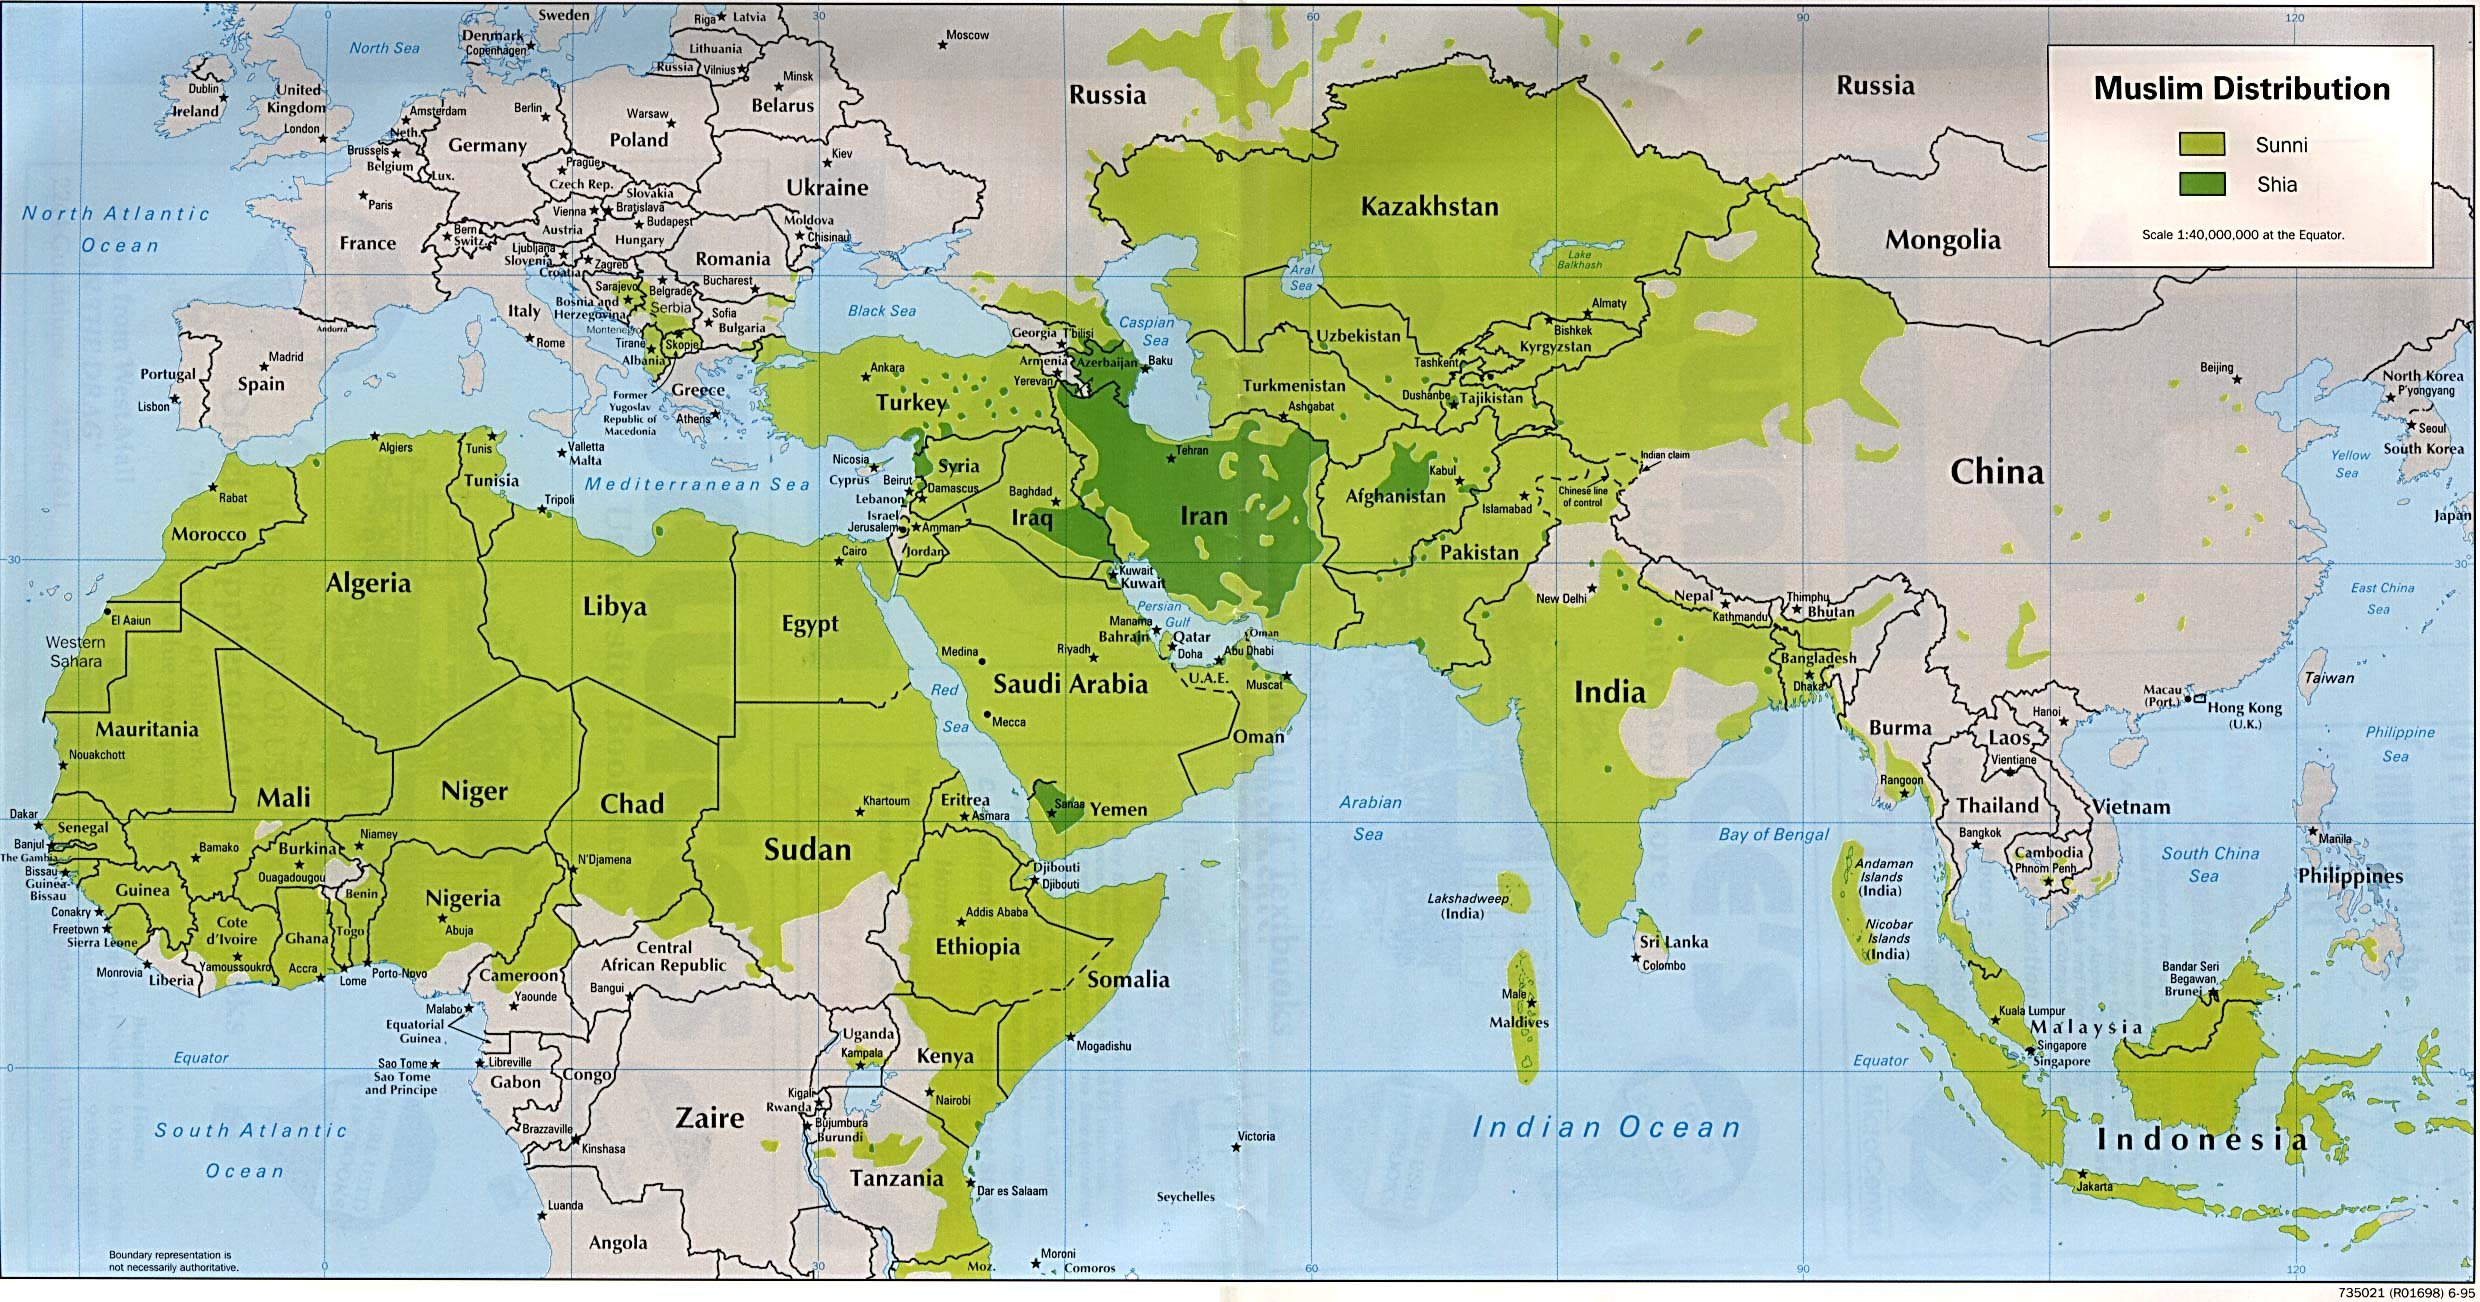 Muslim Distribution Sunni and Shia World Political